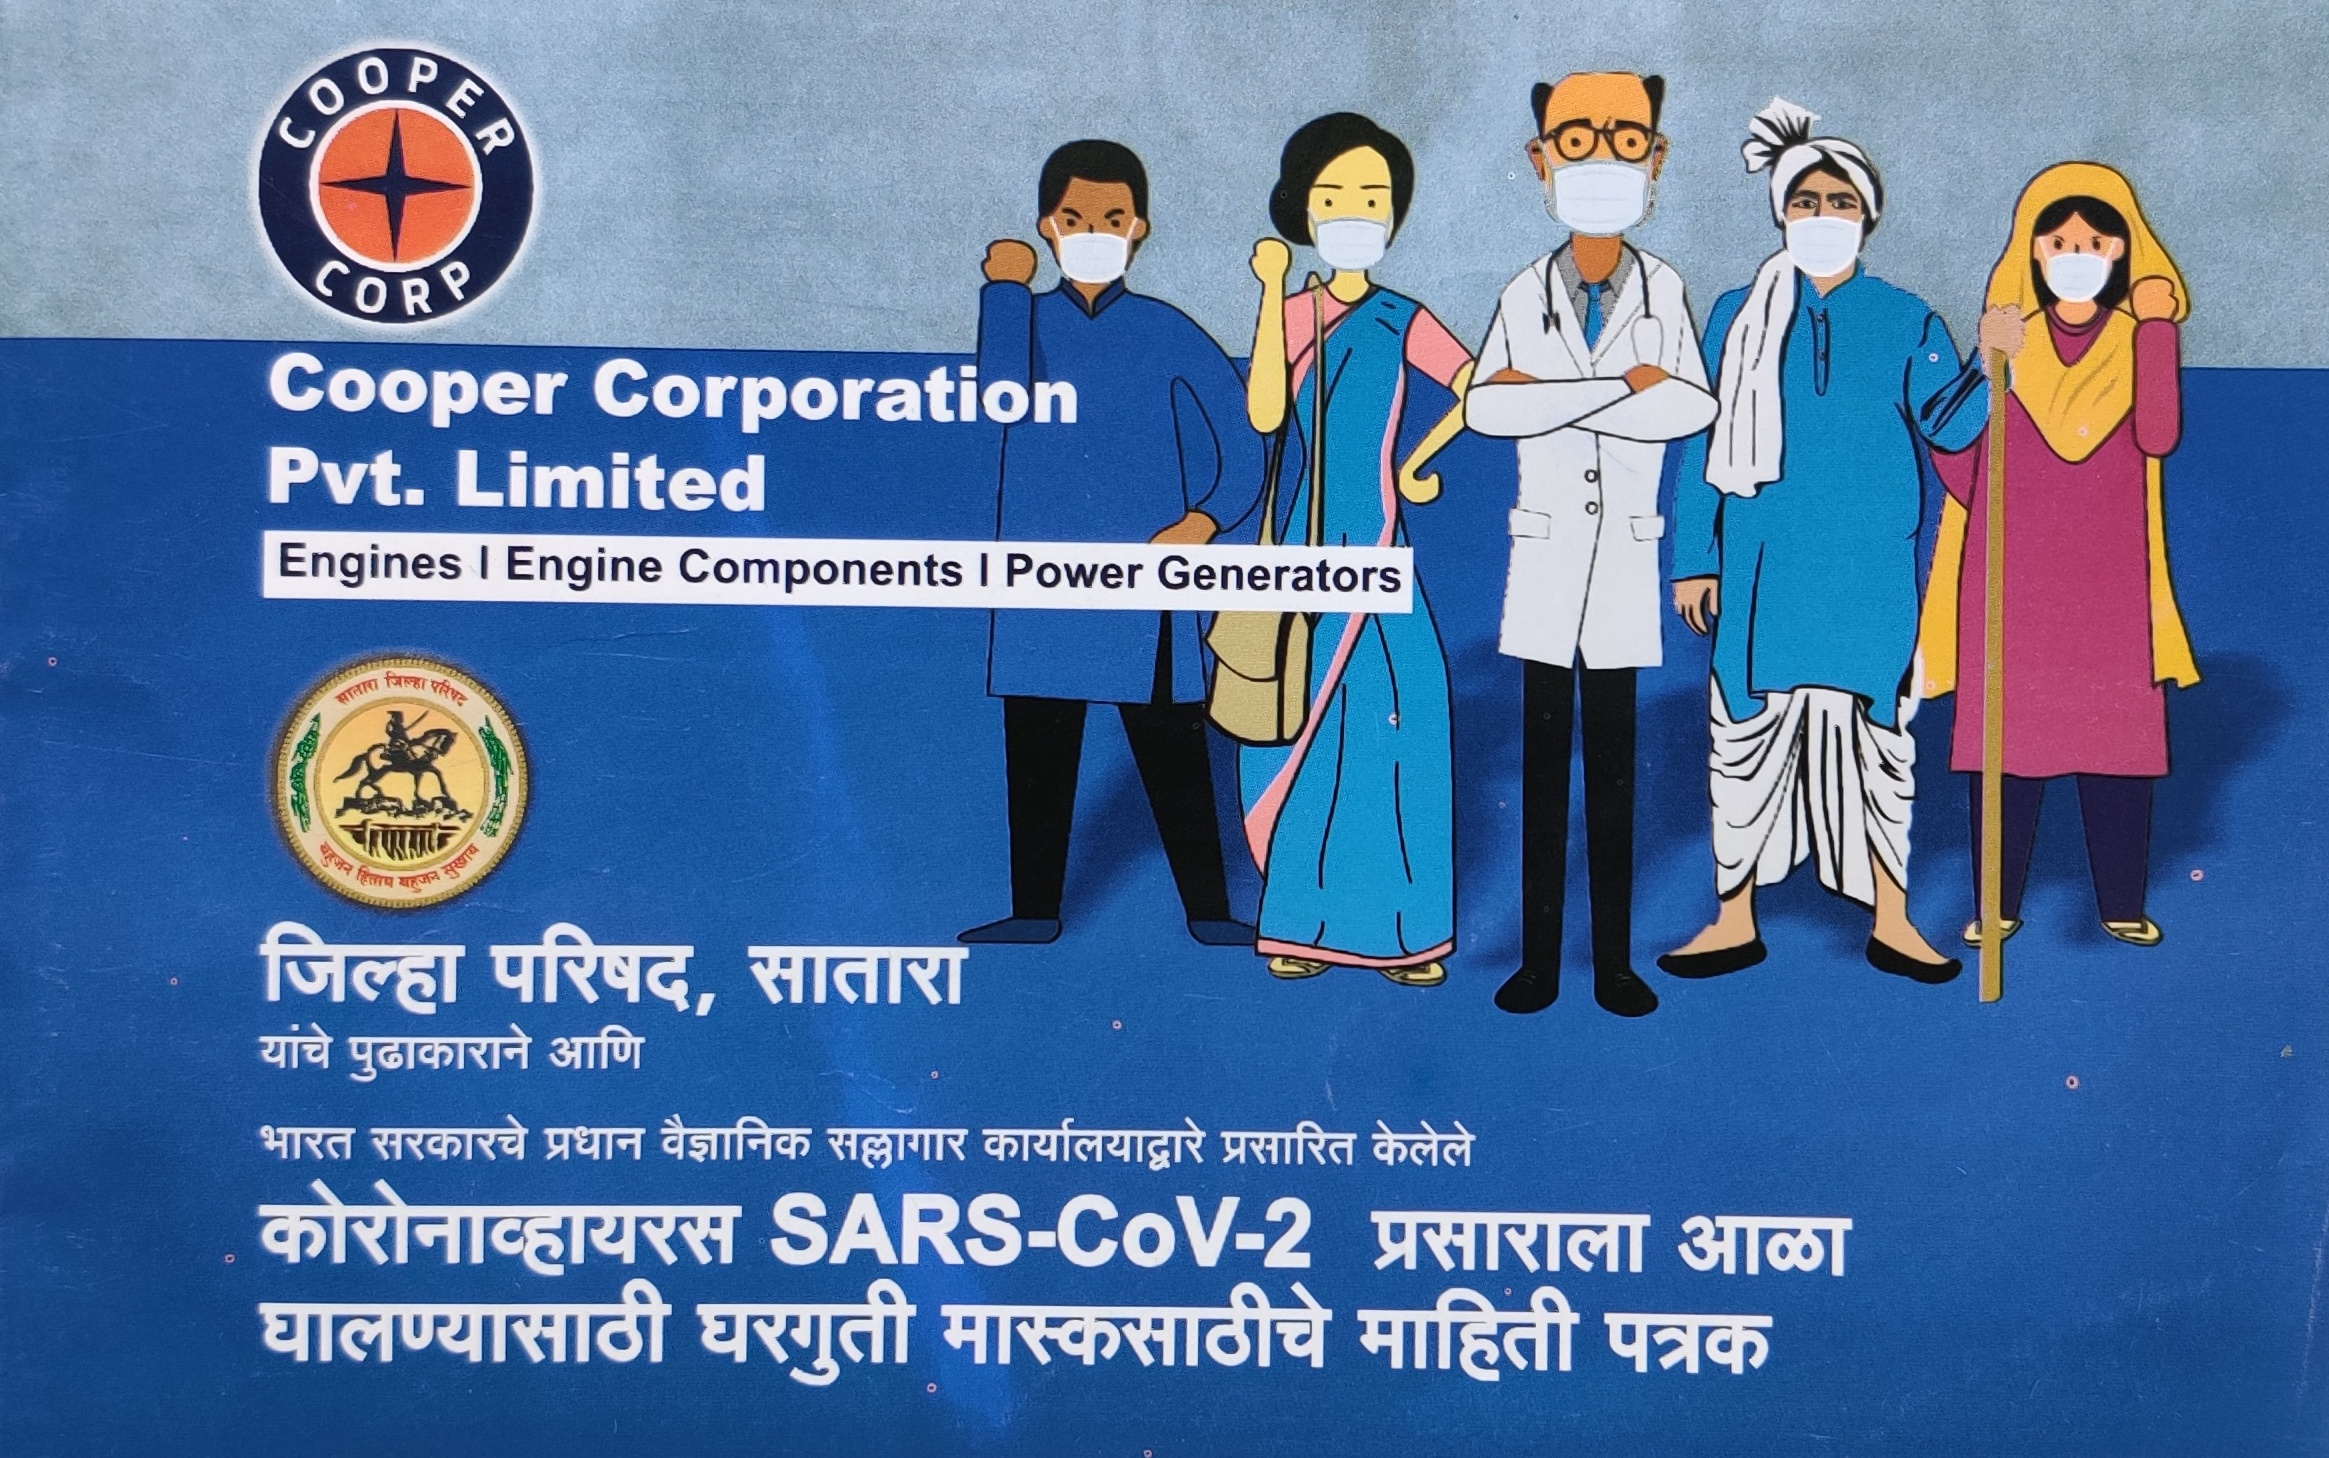 Cooper Corporation is stepping up CSR activities in Satara to support government efforts to address COVID-19 pandemic